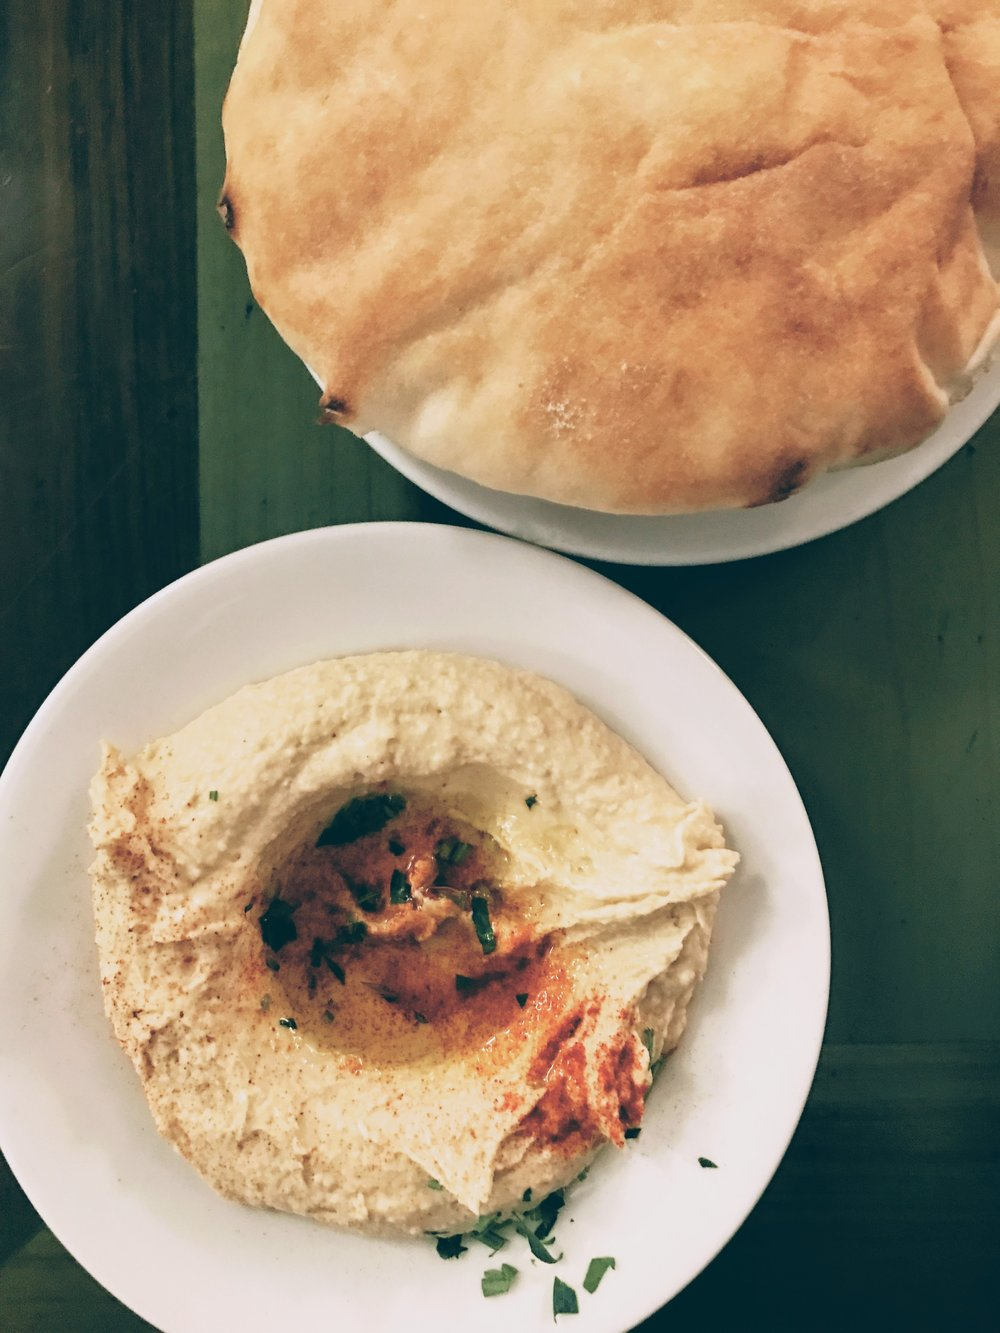 Hummus served with pitta bread